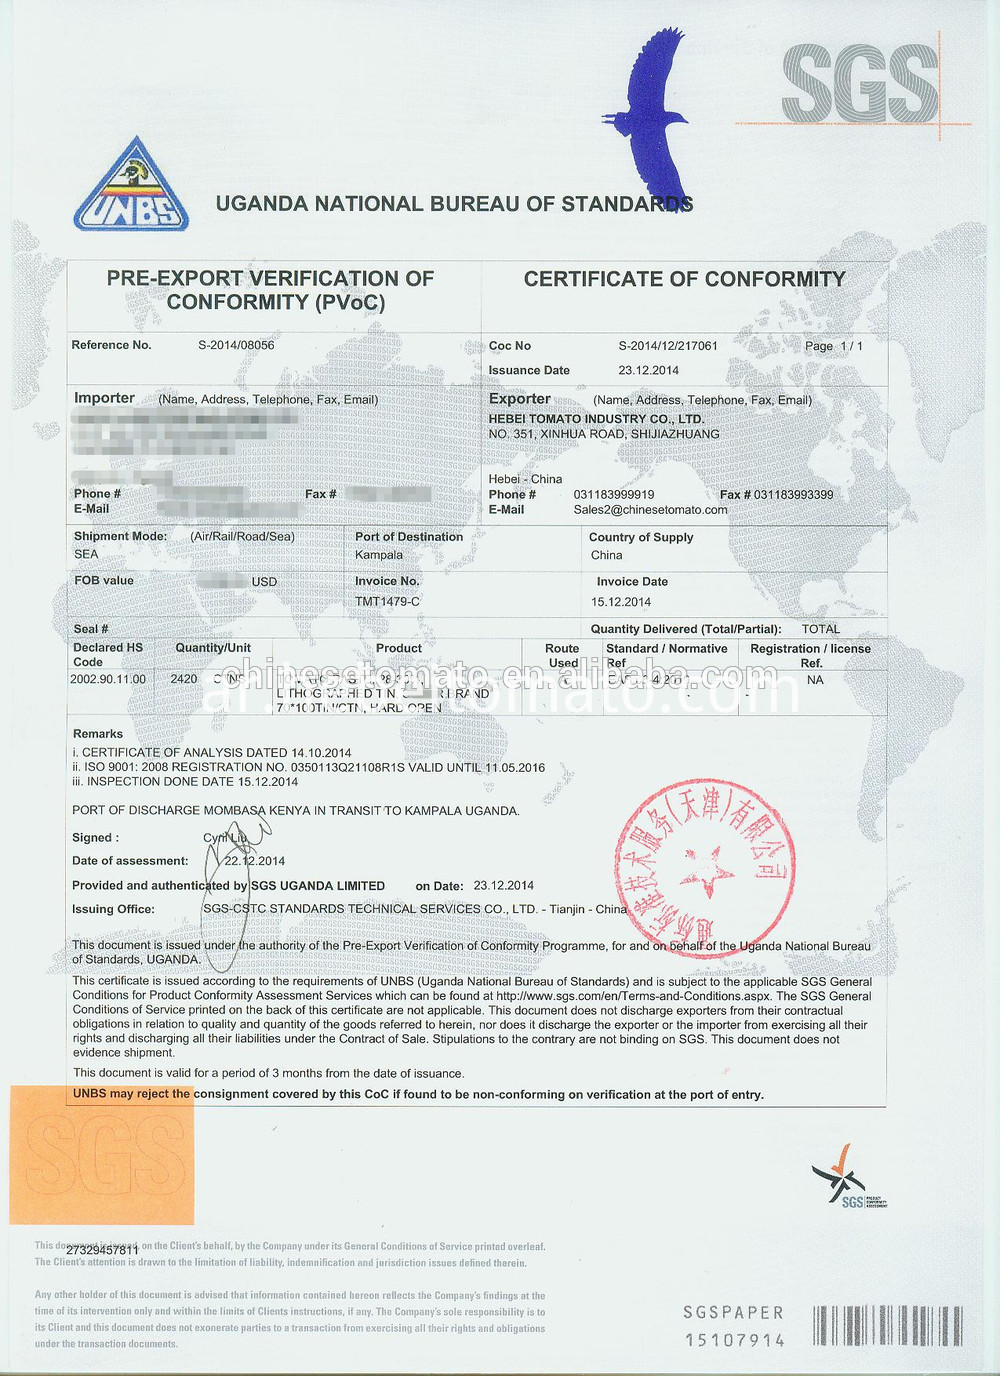 Tomato Paste with SGS certificates